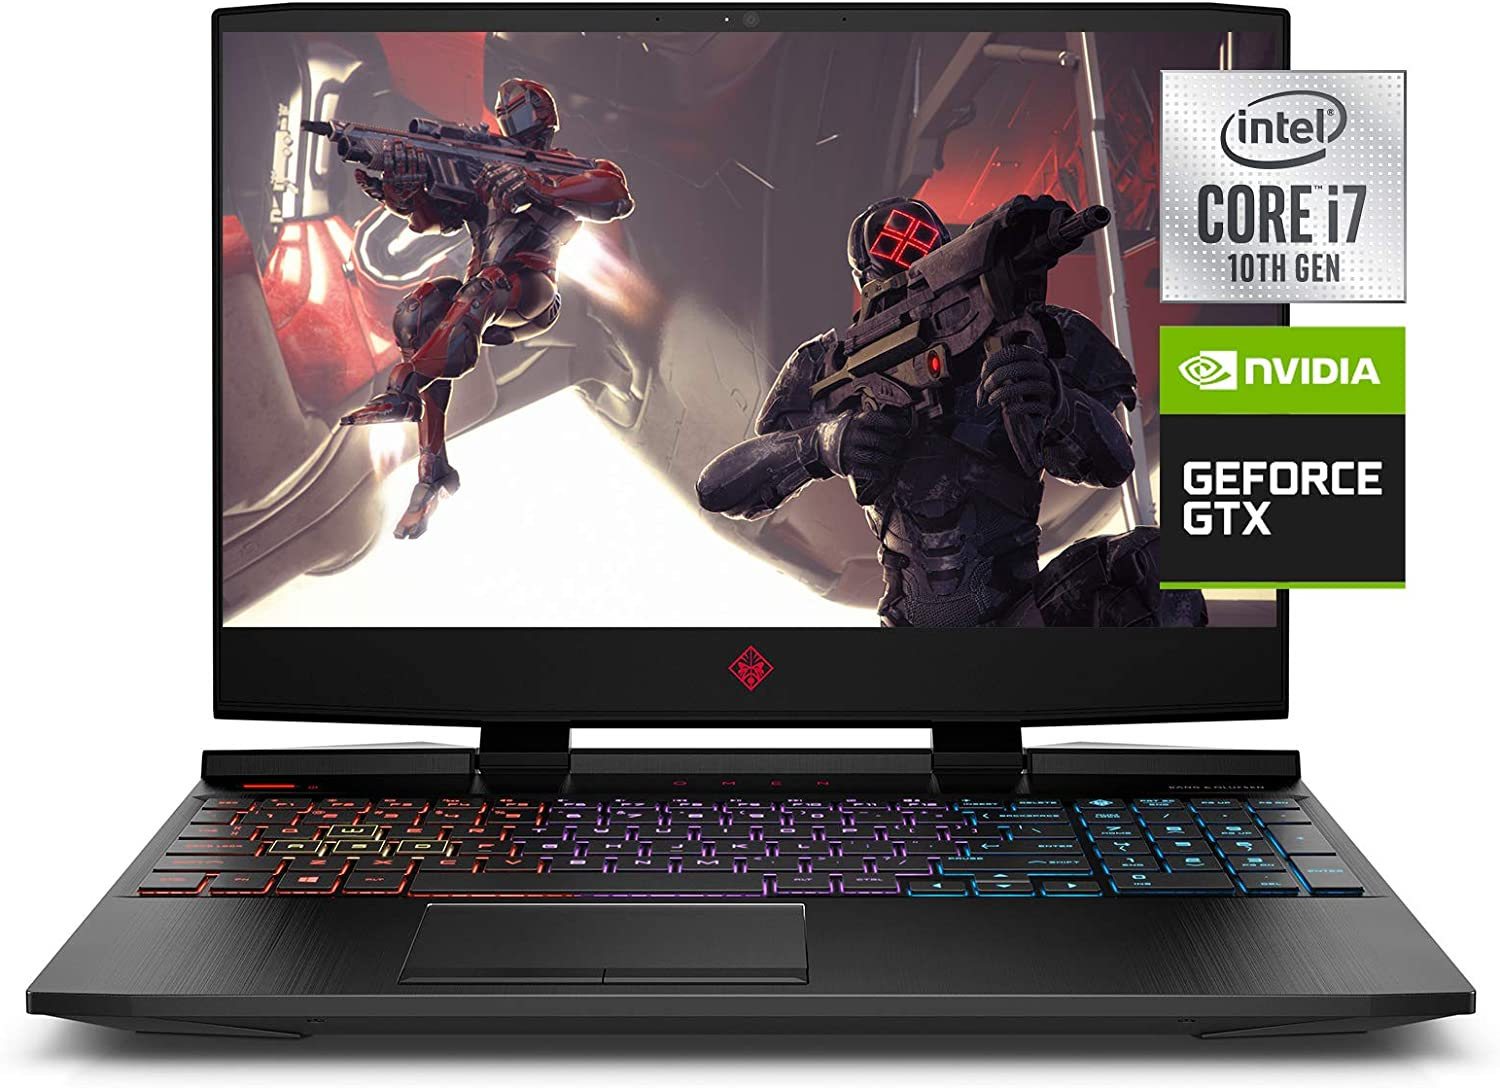 "OMEN 15 Gaming Laptop, NVIDIA GeForce GTX 1650 Ti, Intel Core i7-10750H, 8 GB DDR4 RAM, 512 GB PCIe NVMe SSD, 15.6"" Full HD, Windows 10 Home, RGB Keyboard (15-dc2010nr, 2020 Model)"